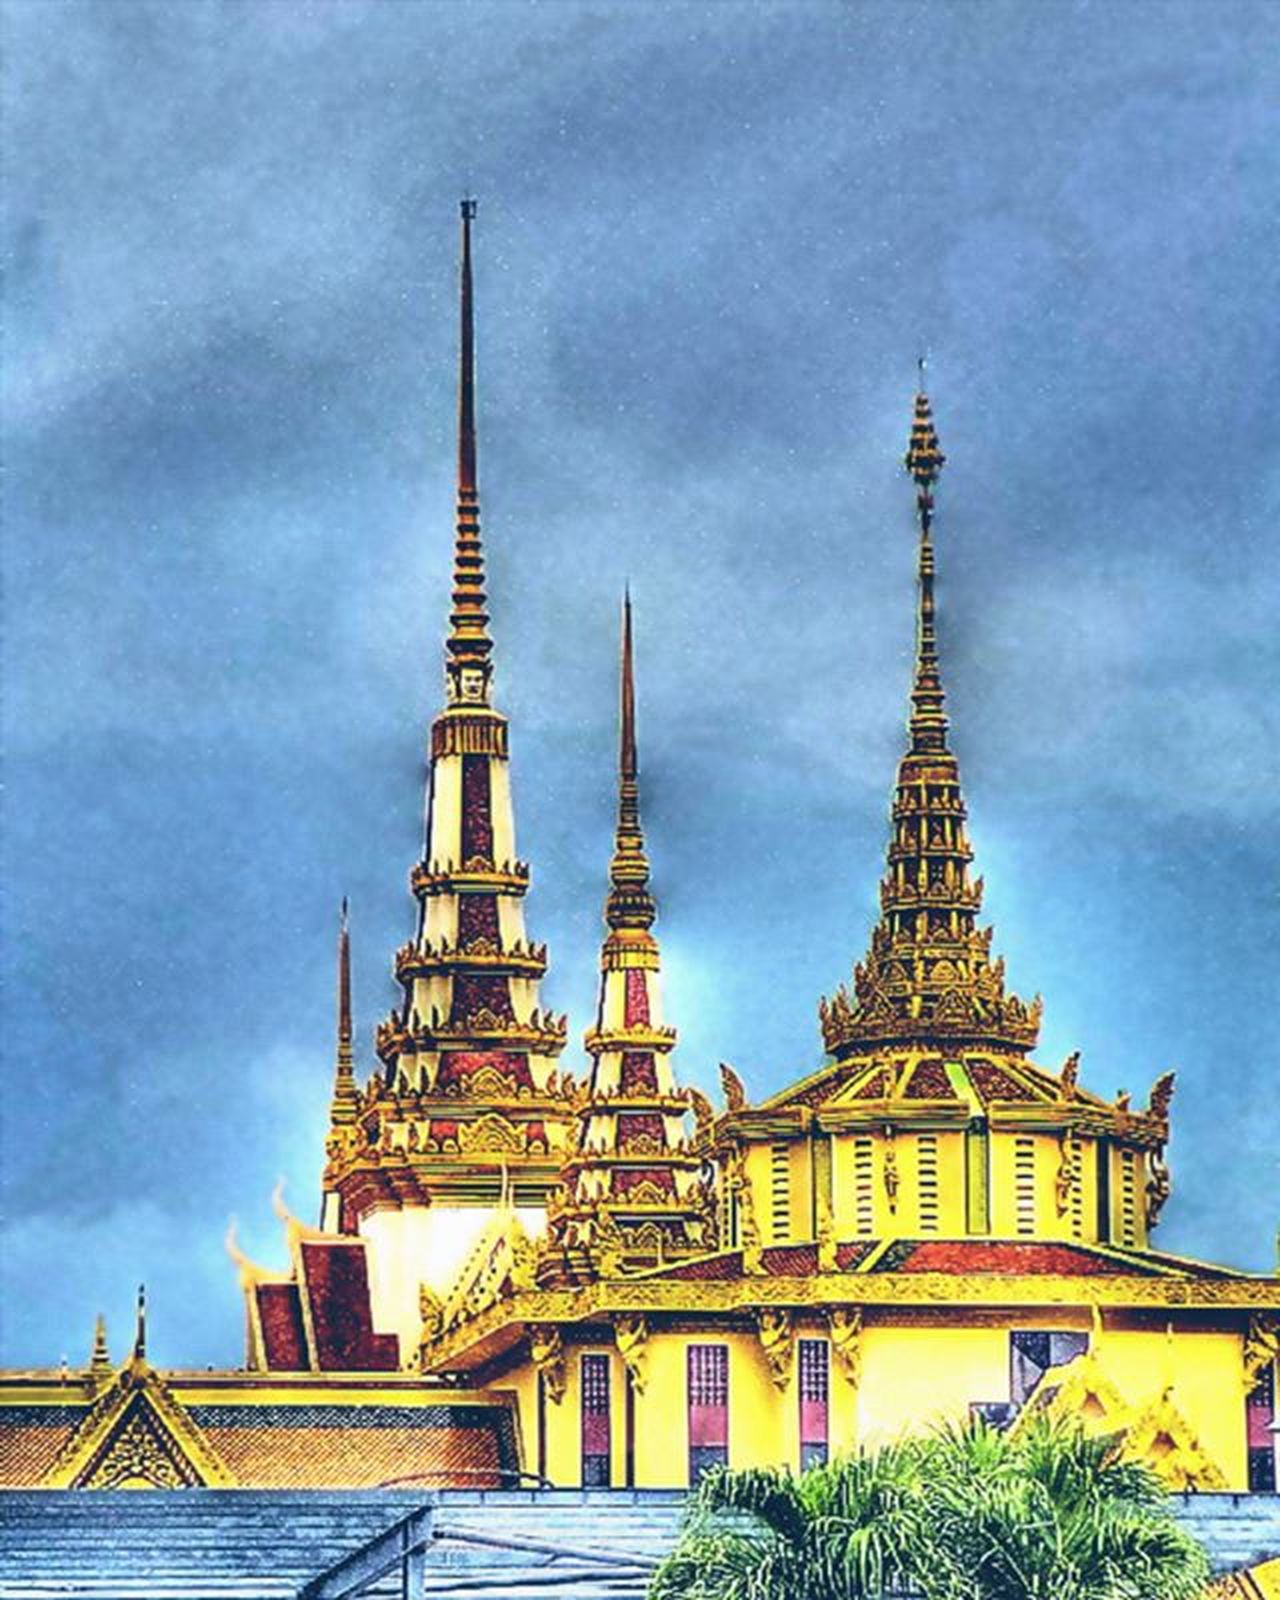 3 Pinnacles of the Buddhist Institute. Lumia930 Mobilephotography WindowsPhonePhotography WeLoveLumia ShotOnMyLumia  Lumiaography Theappwhisperer Makemoments MoreLumiaLove GoodRadShot TheLumians Fhotoroom Lumia PicHitMe EyeEm Eyewm_o MenchFeature Photography Nban NbanFamily Pixelpanda Visitorg Aop_Lab Natgeo Natgeotravel NatGeoYourShot Cambodia PhnomPenh @fhotoroom_ @thelumians @lumiavoices @pichitme @windowsphonephotography @microsoftwindowsphone @microsoftlumiaphotography @mobile_photography @moment_lens @goodradshot @mobilephotoblog @street_hunters @lumia @pixel_panda_ @eyeem_o @photocrowd @photoadvices @nothingbutanokia @nothinbutanokia